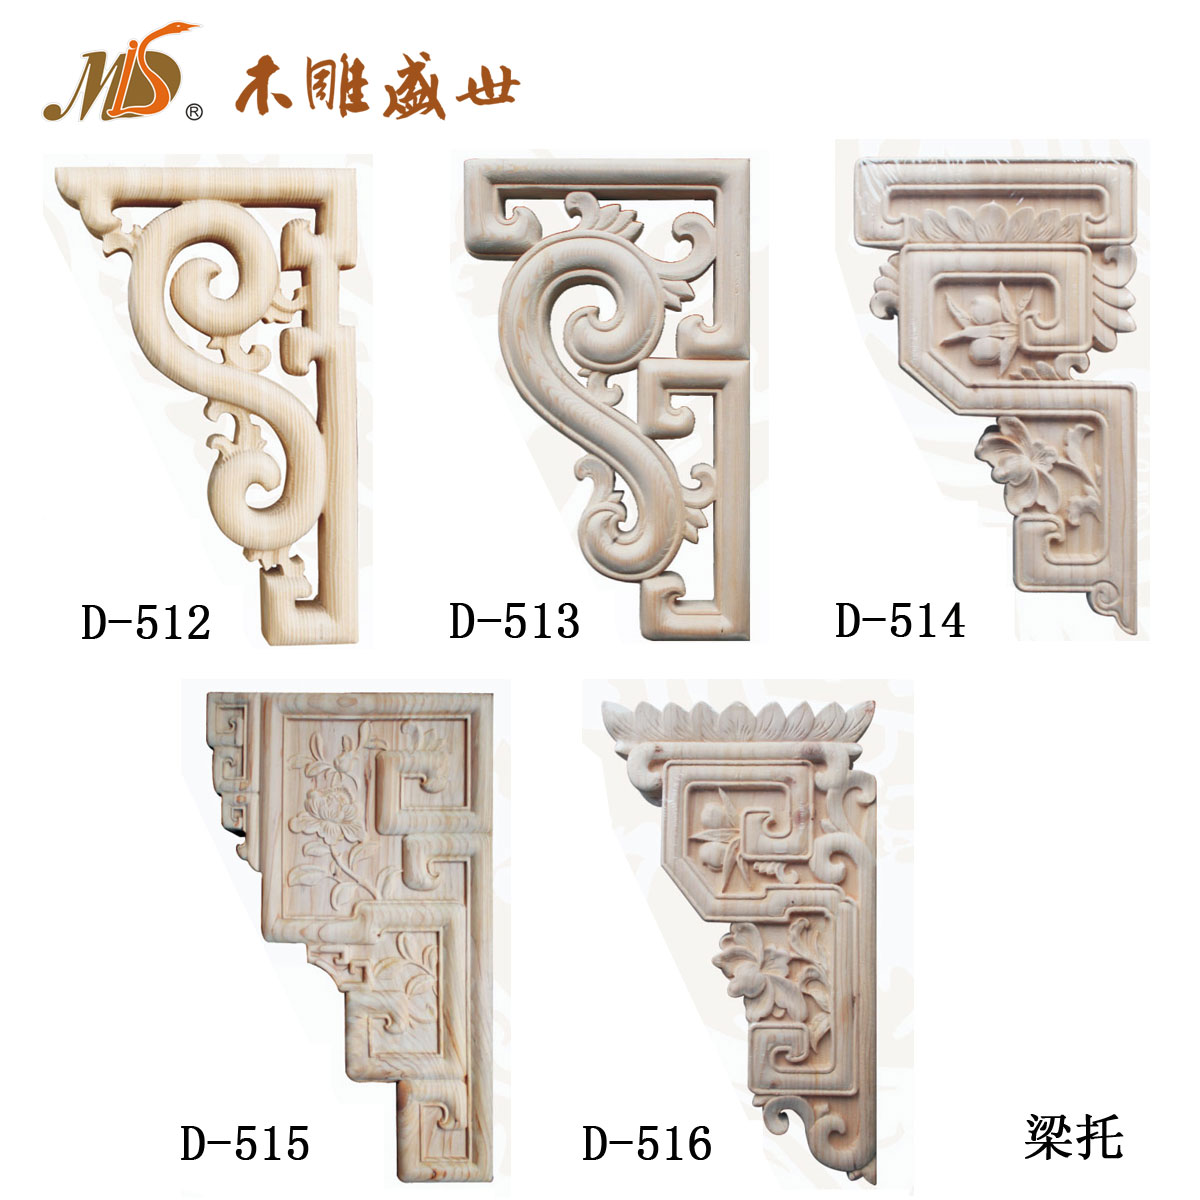 orleans corbels photo creole stock quarter on decorative closeup french townhouse in louisiana new of decor a the